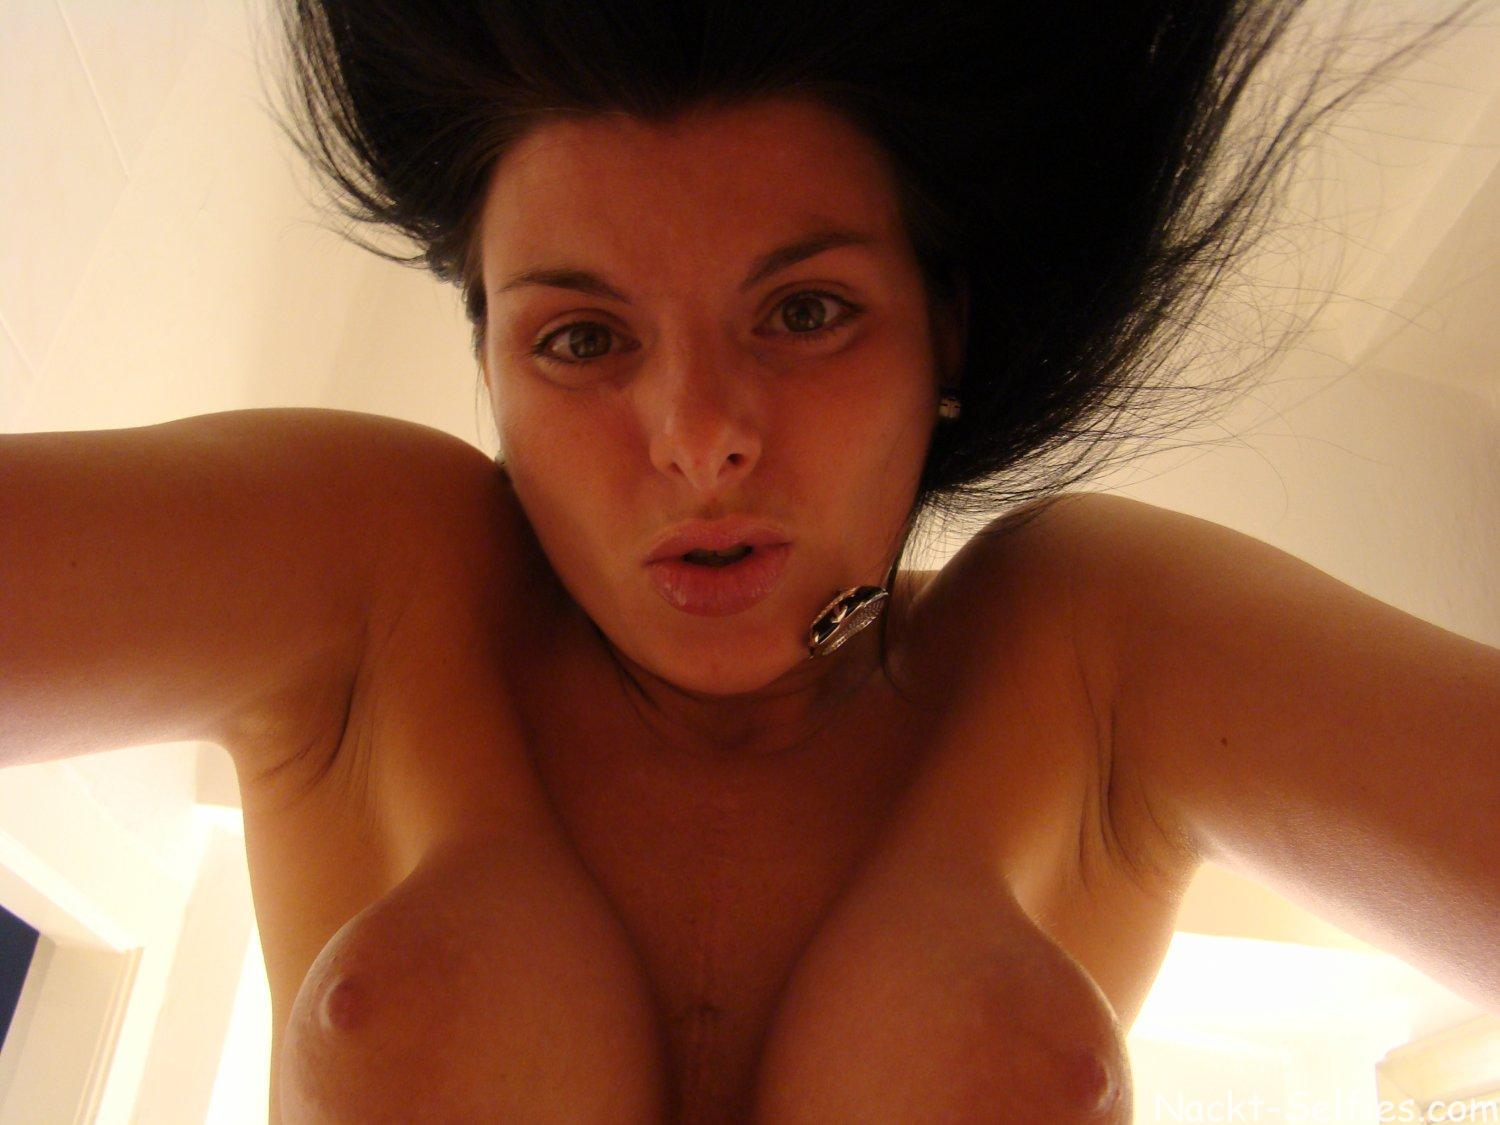 Privat Nackt Selfie Milf Bettina 09